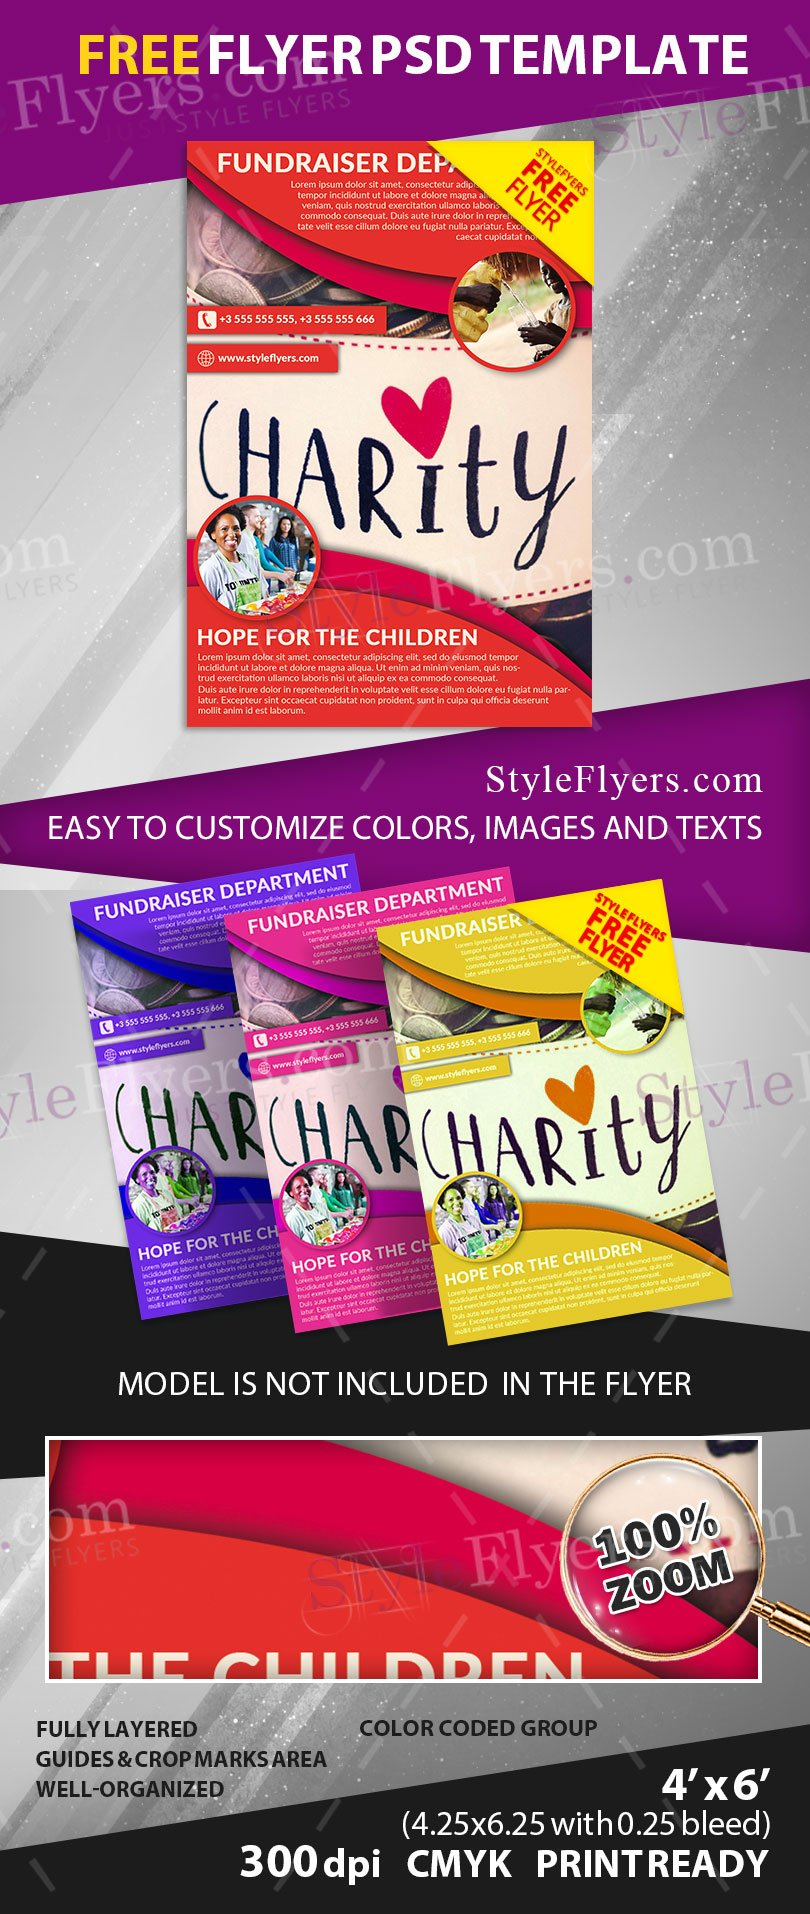 Fundraiser FREE PSD Flyer Template Free Download 11693 Styleflyers – Fundraiser Template Free